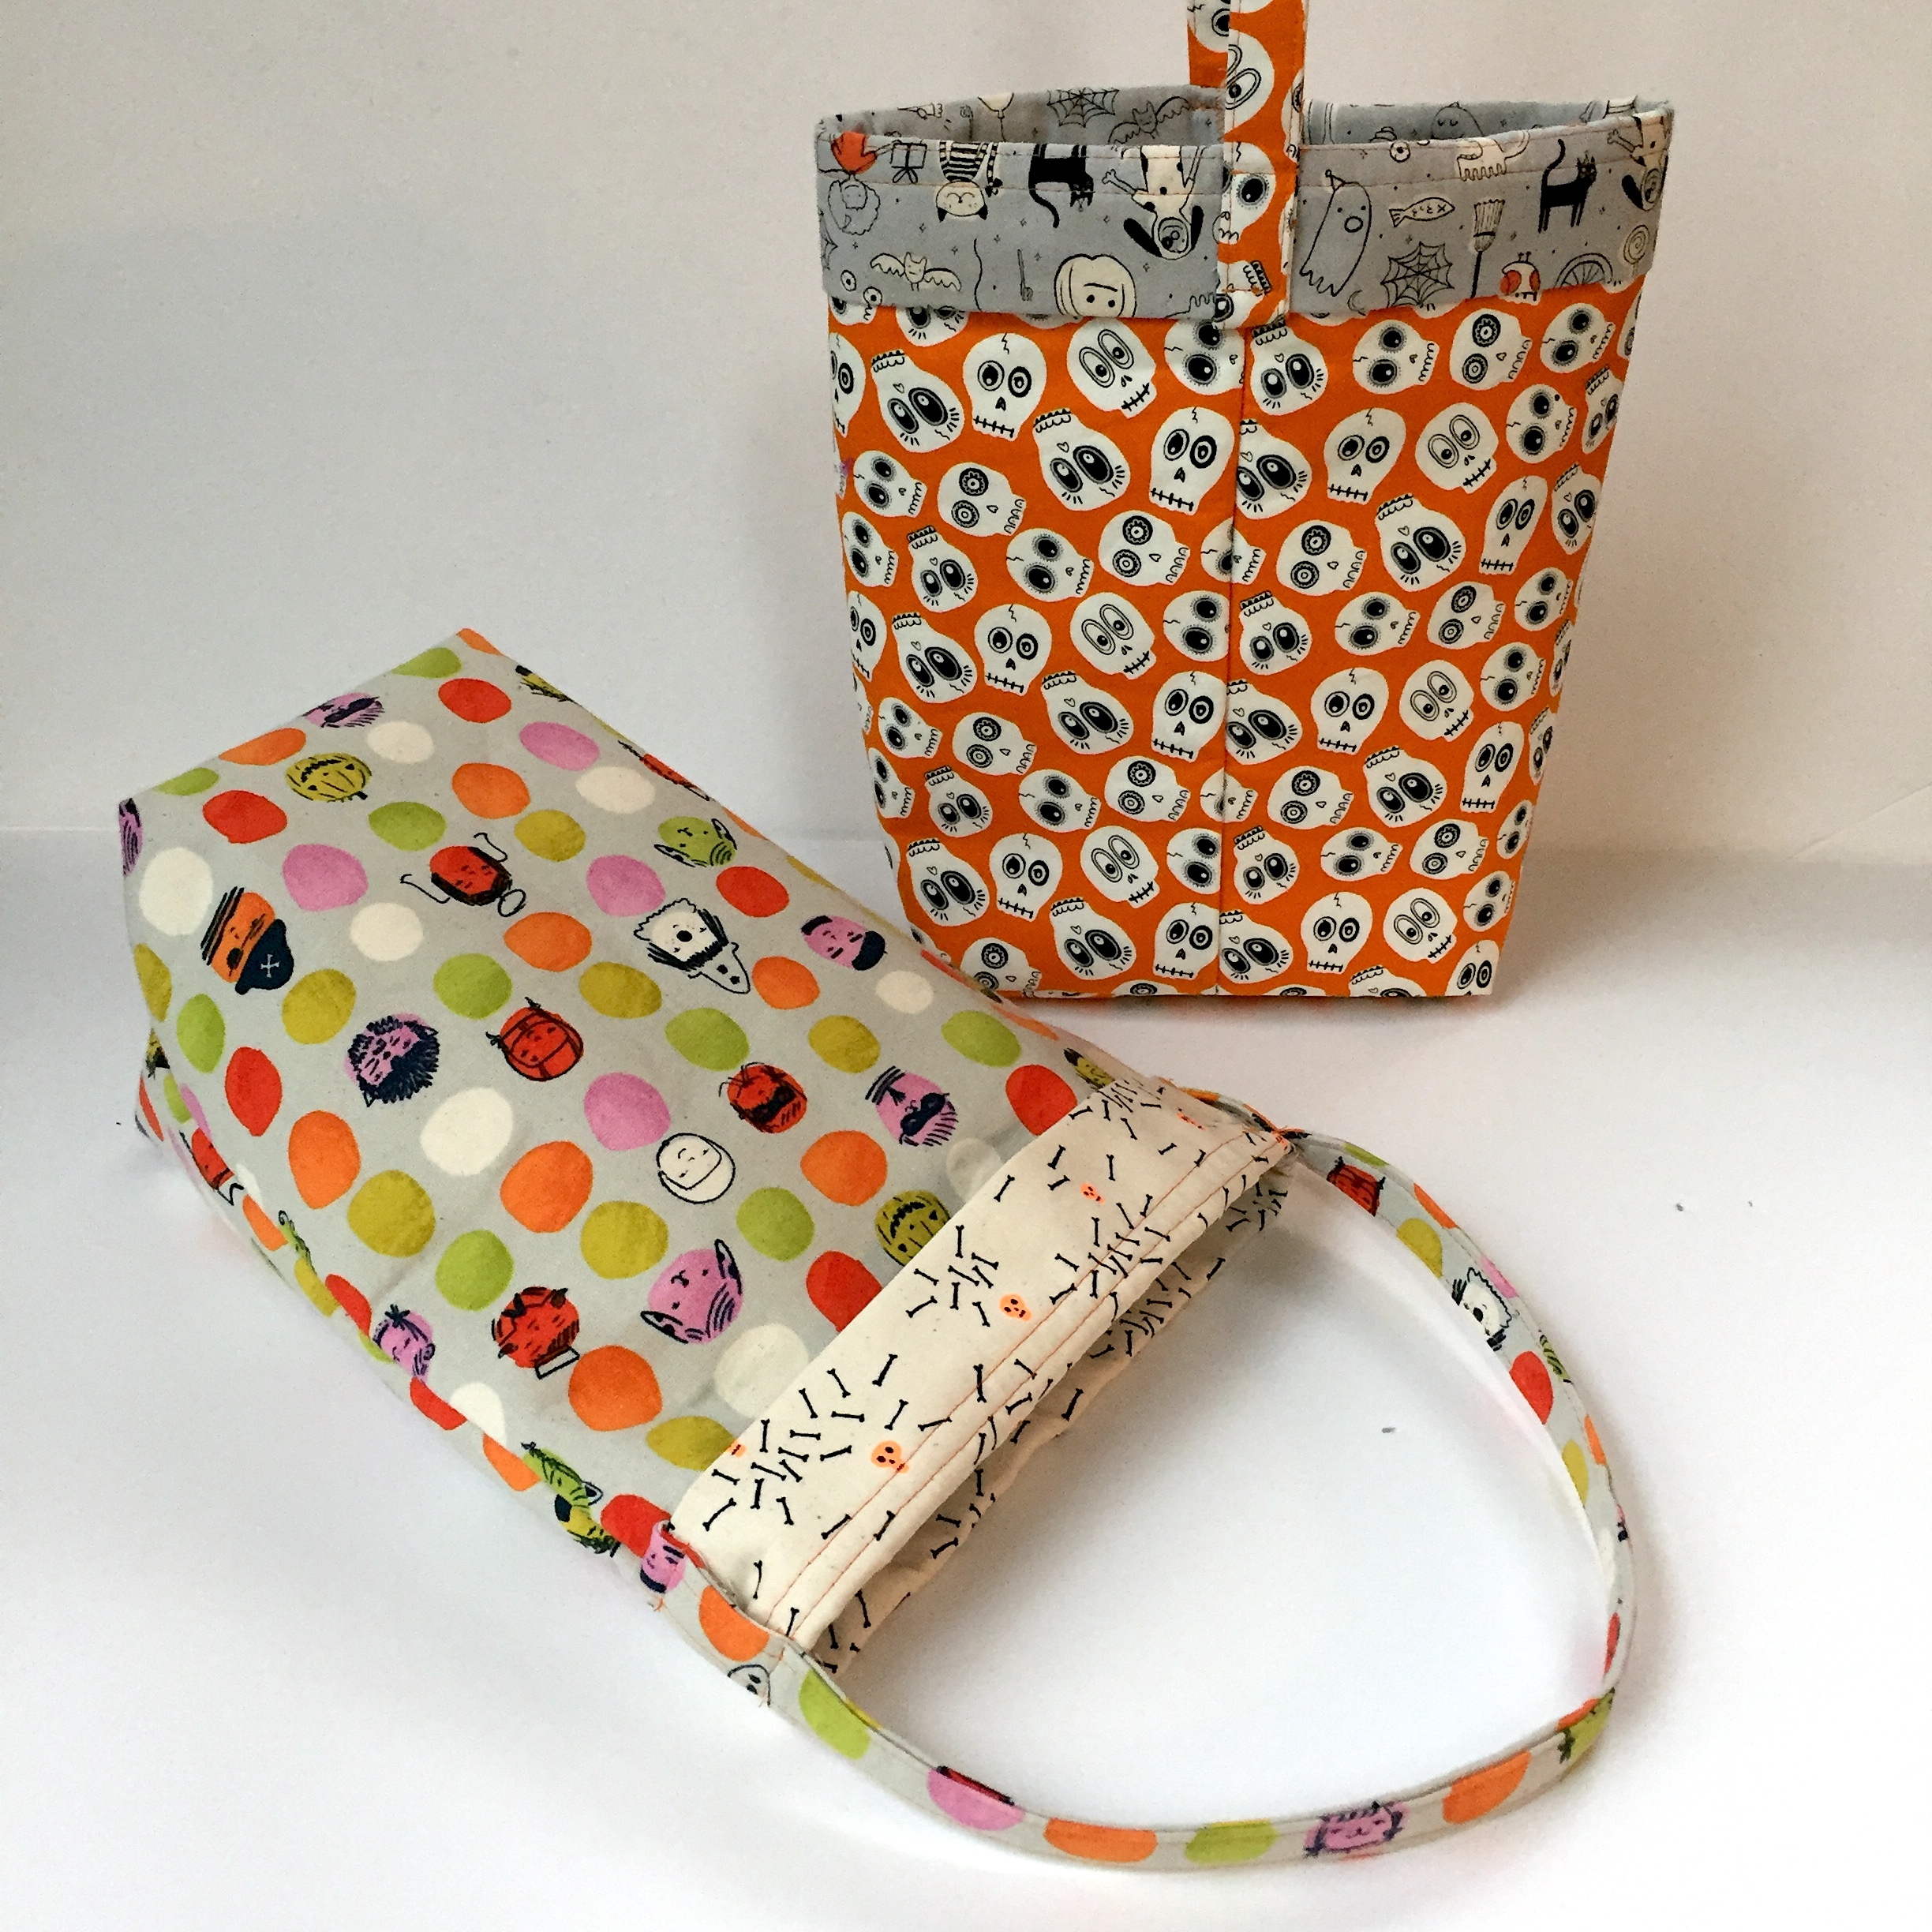 coin purse uses two fat quarters Sewing PATTERN